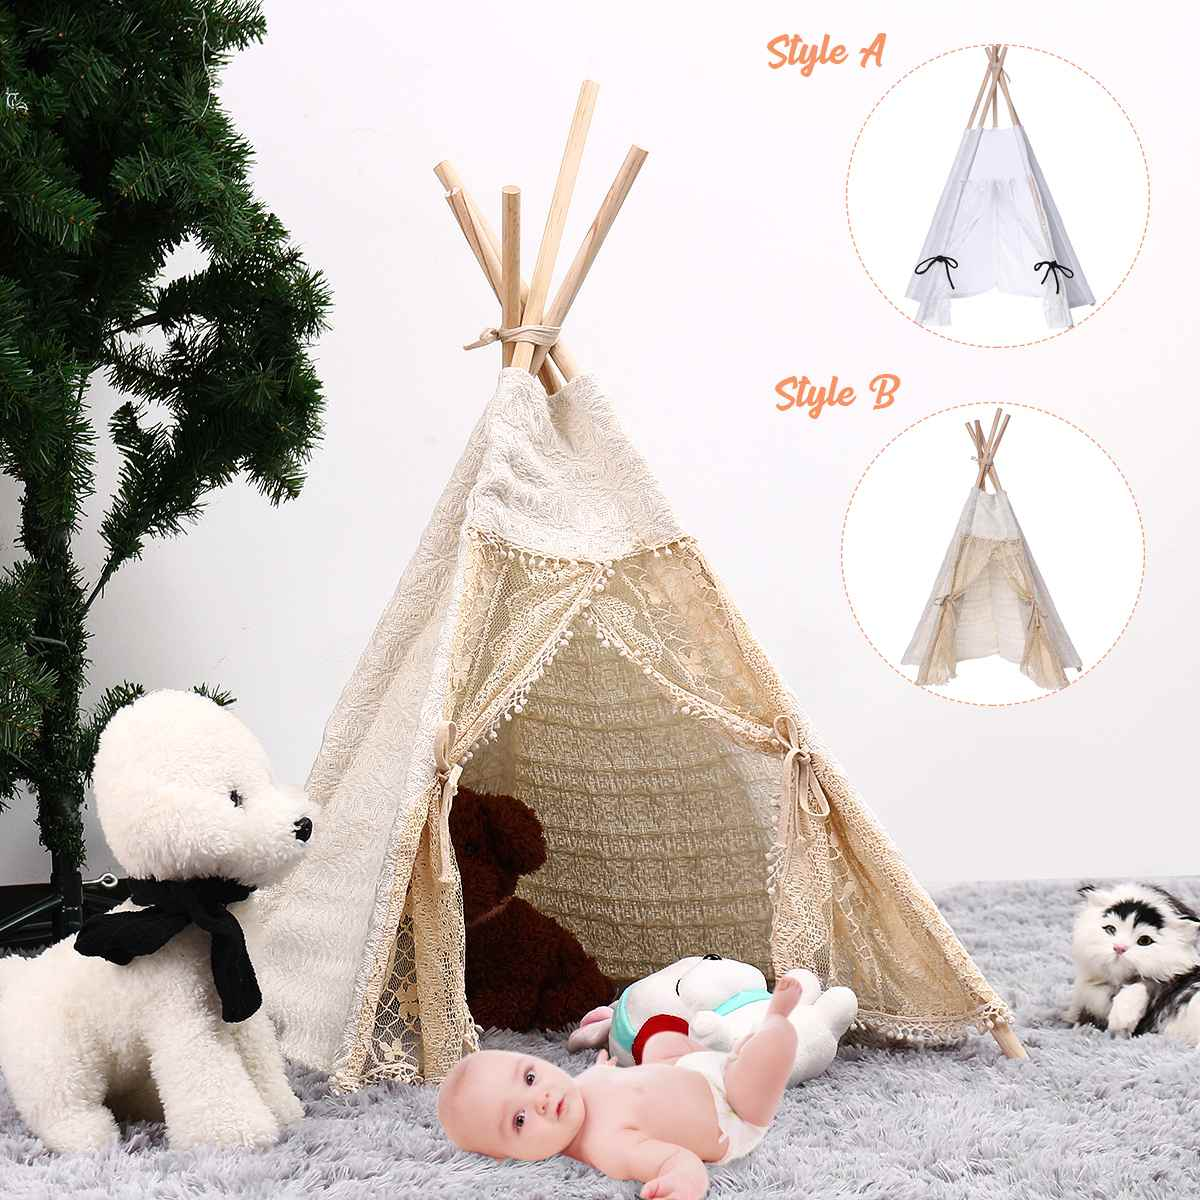 80cm-Large Canvas Teepee Tent Kids Teepee Tipi House Children Tipi Tee Tent Kids Sleeping Newborn Photography Photo Props